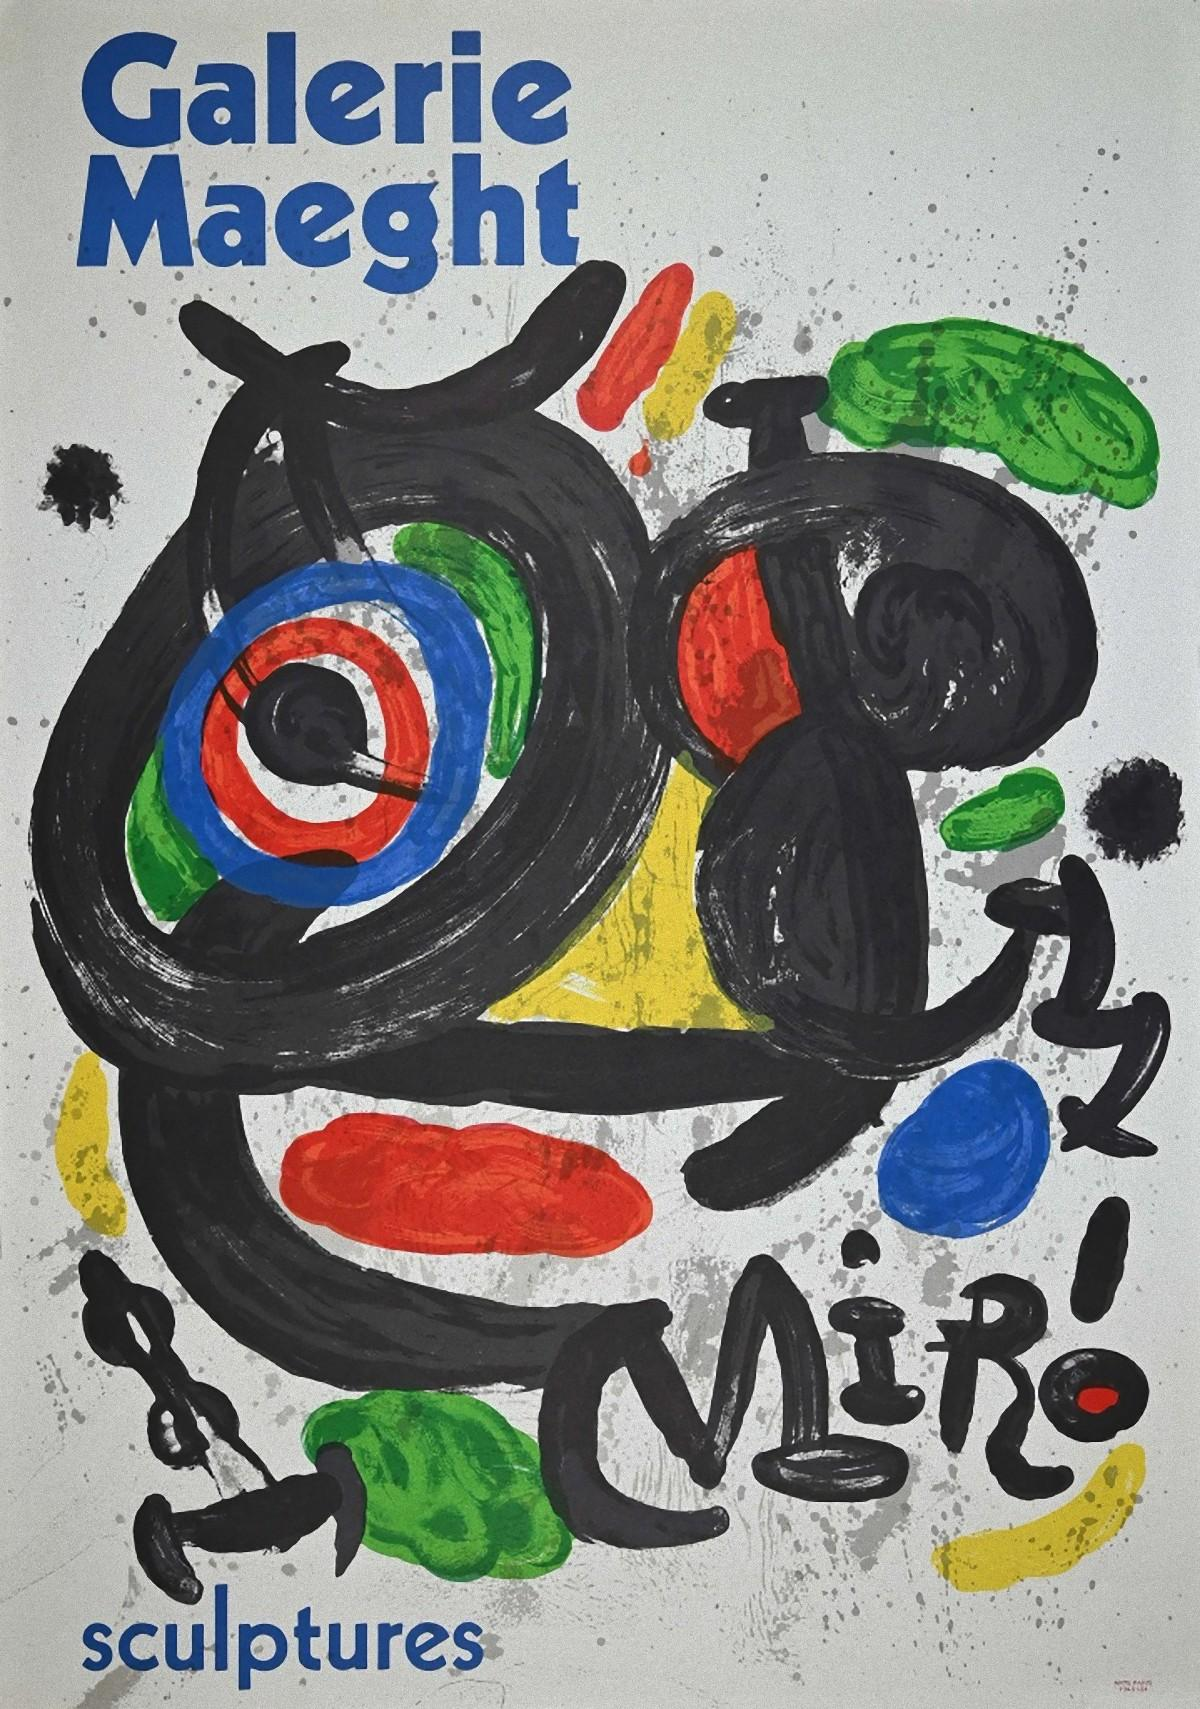 Mirò - Sculptures - Vintage Lithographic Poster Galerie Maeght - 1970s